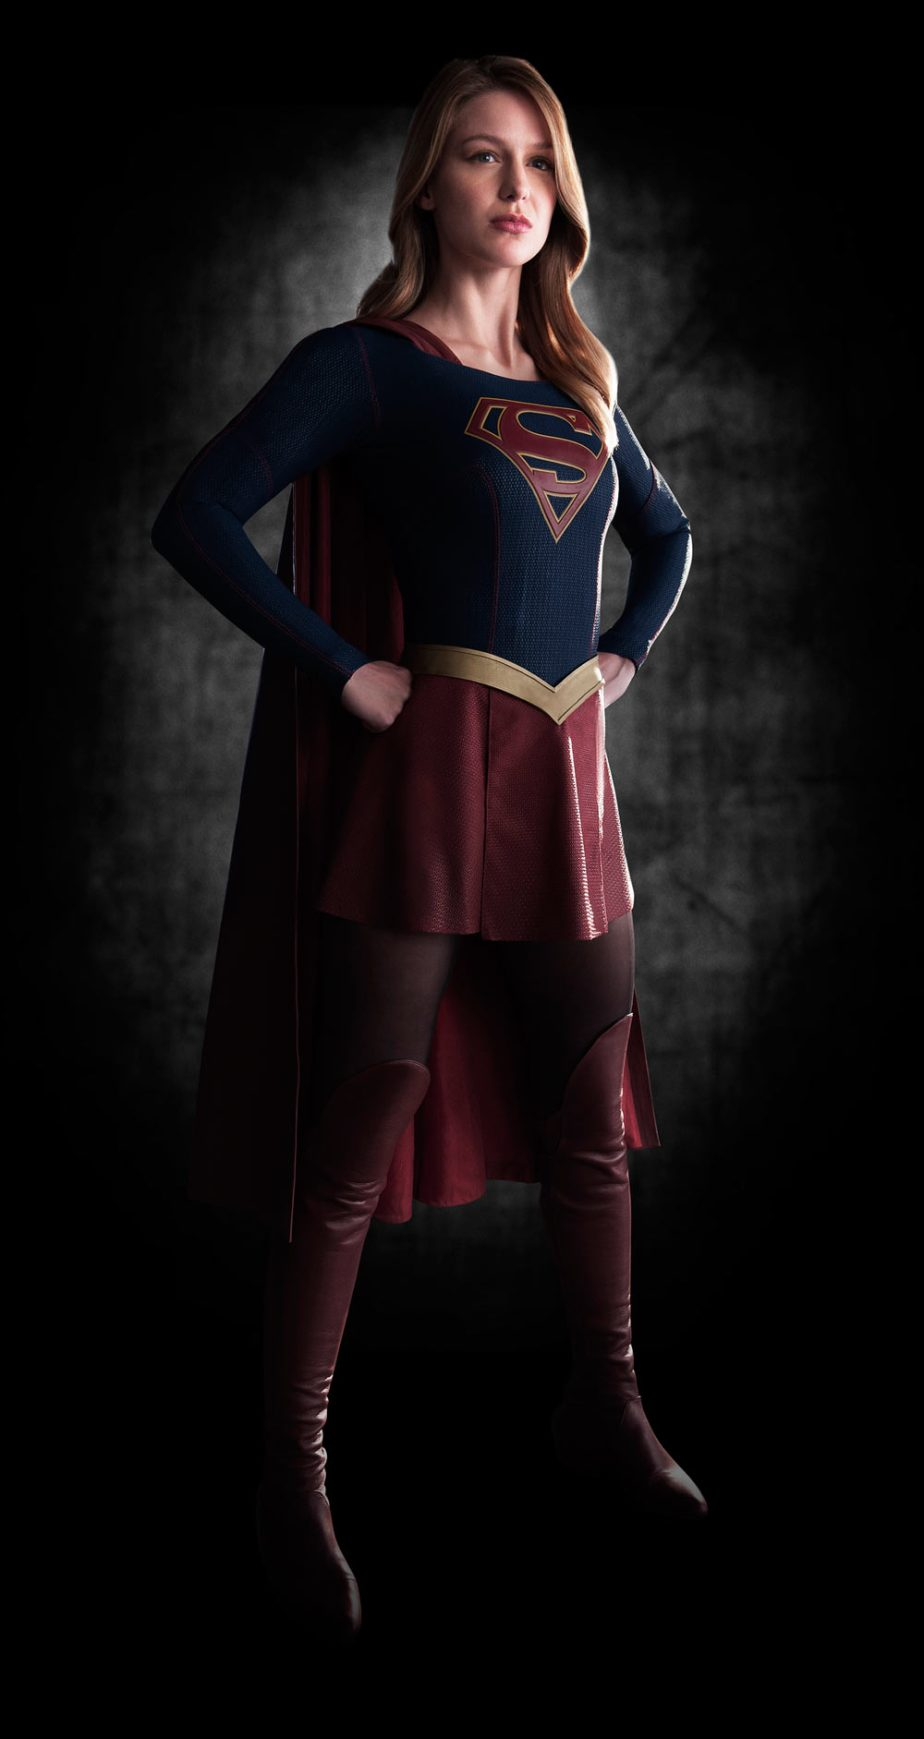 Le Costume de Supergirl